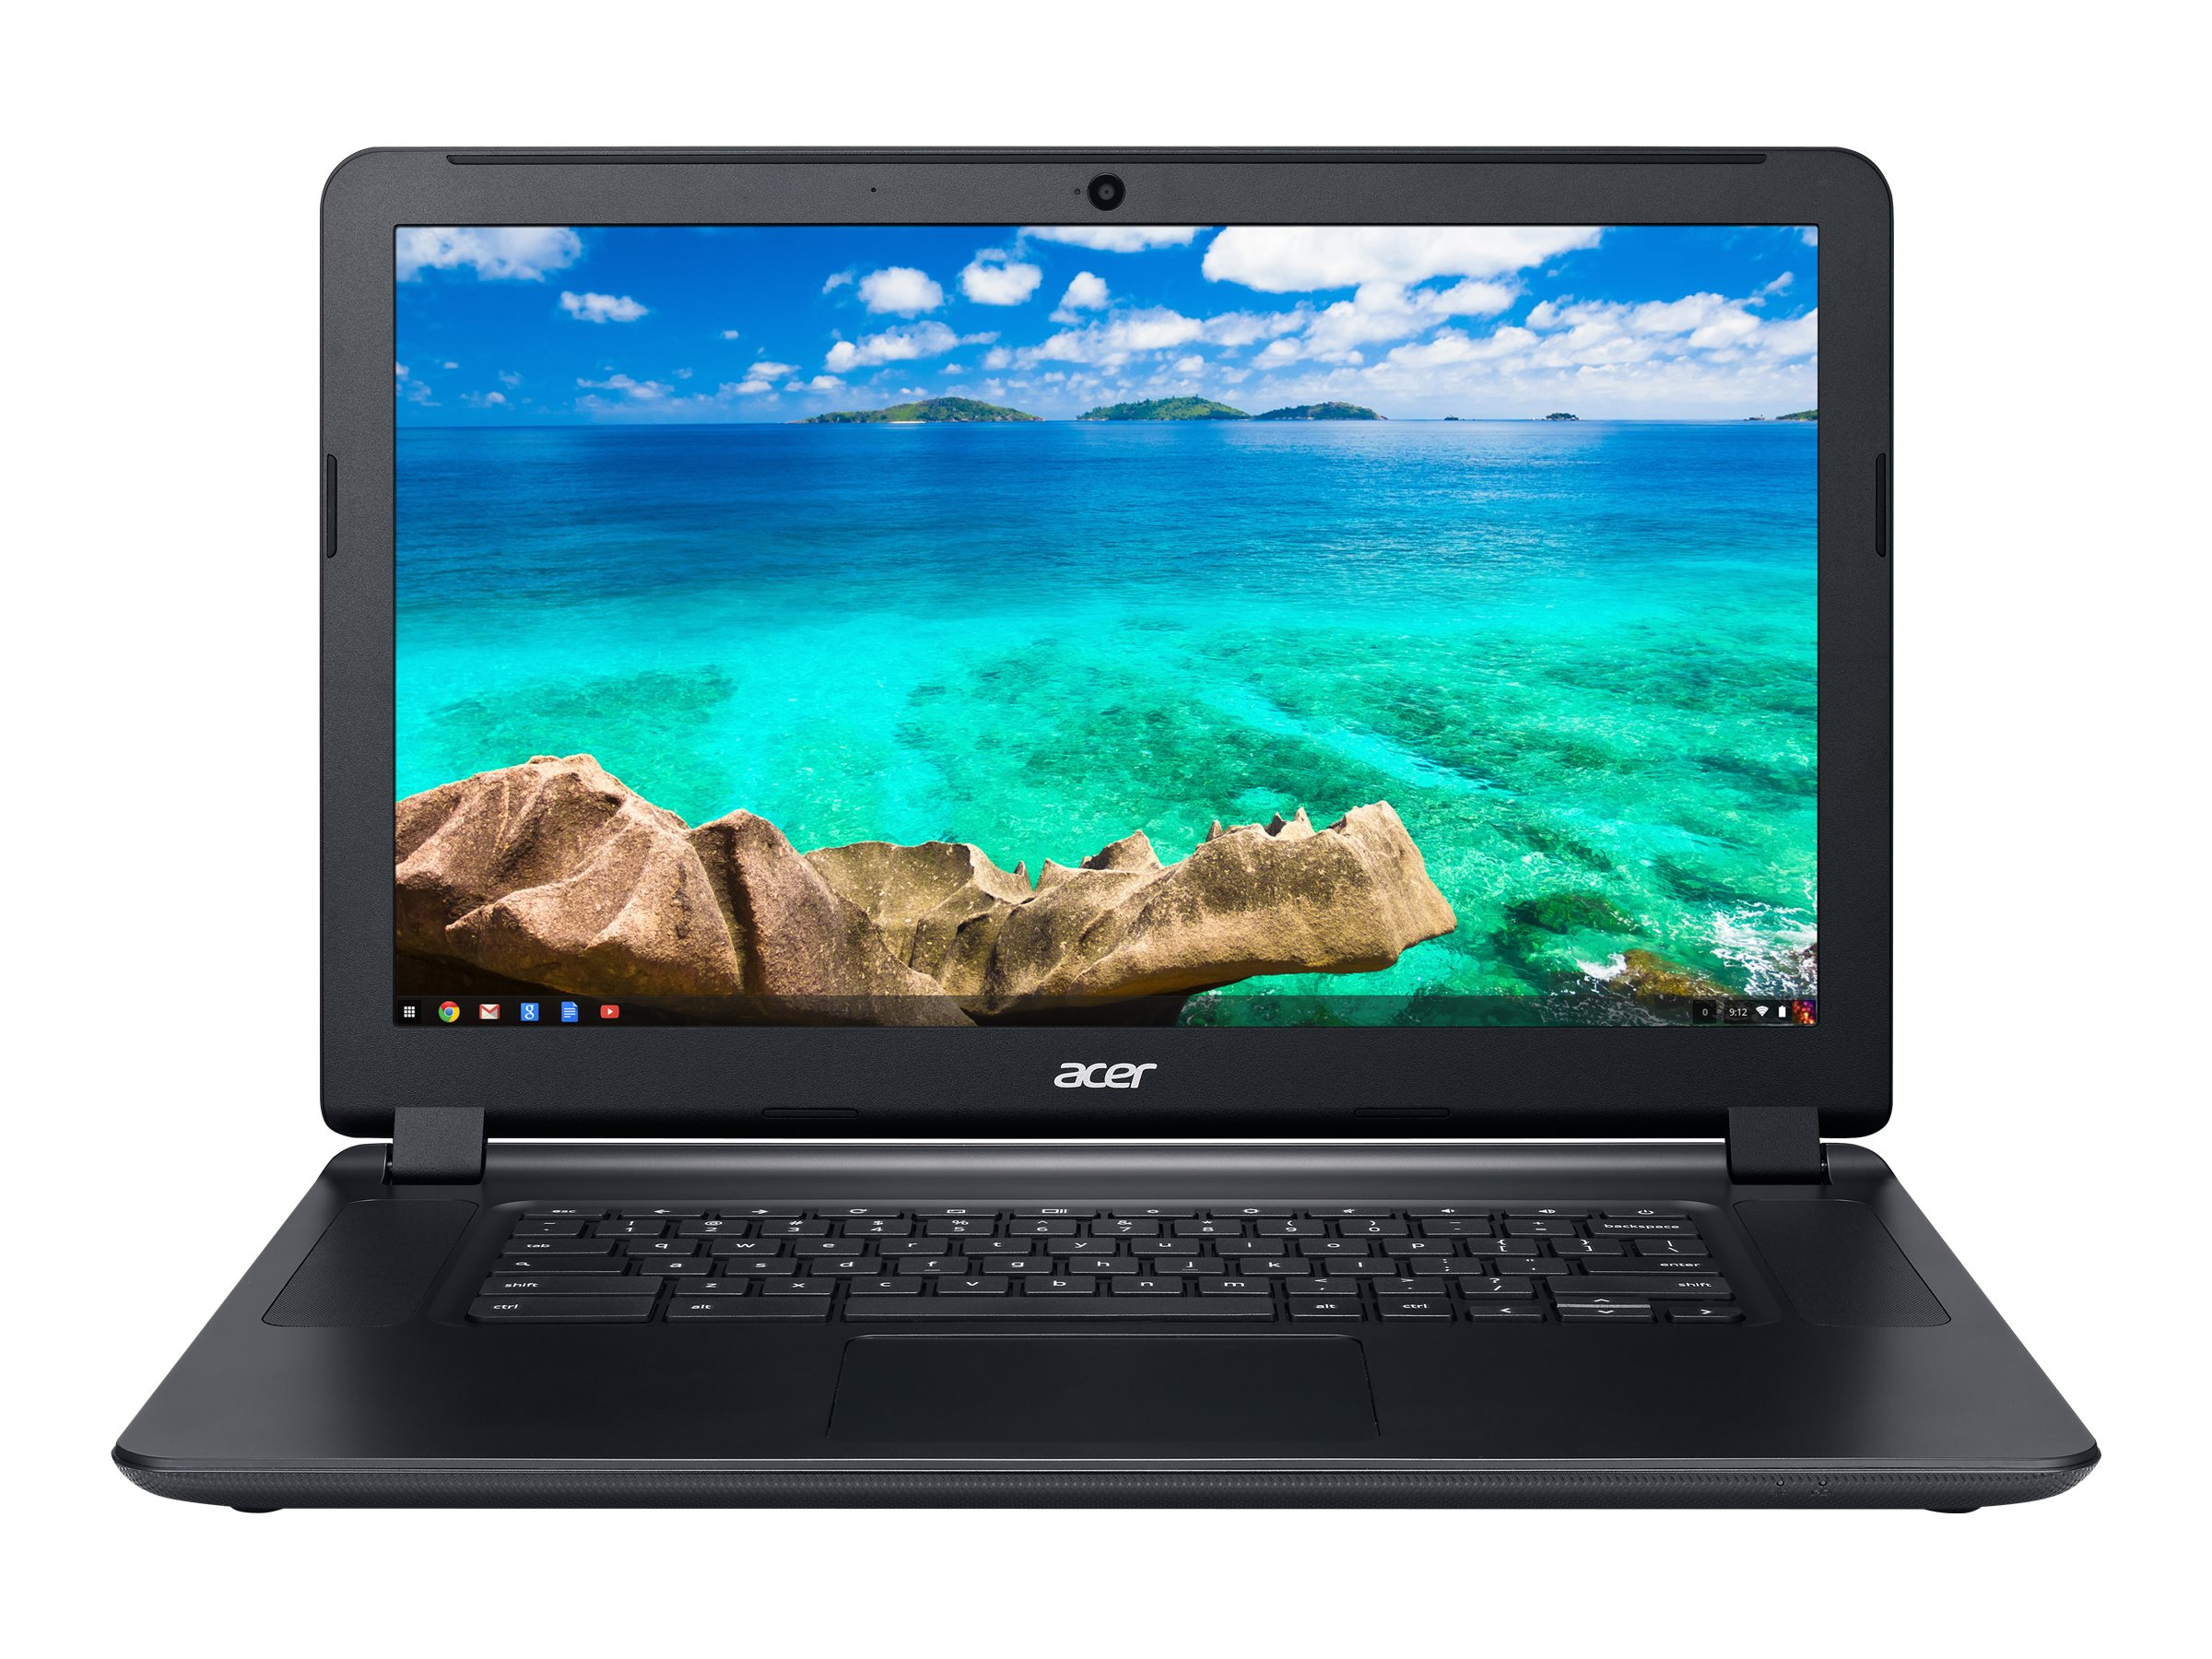 Acer Chromebook C910-3916 2.0GHz Core i3 15.6in display, NX.EF3AA.010